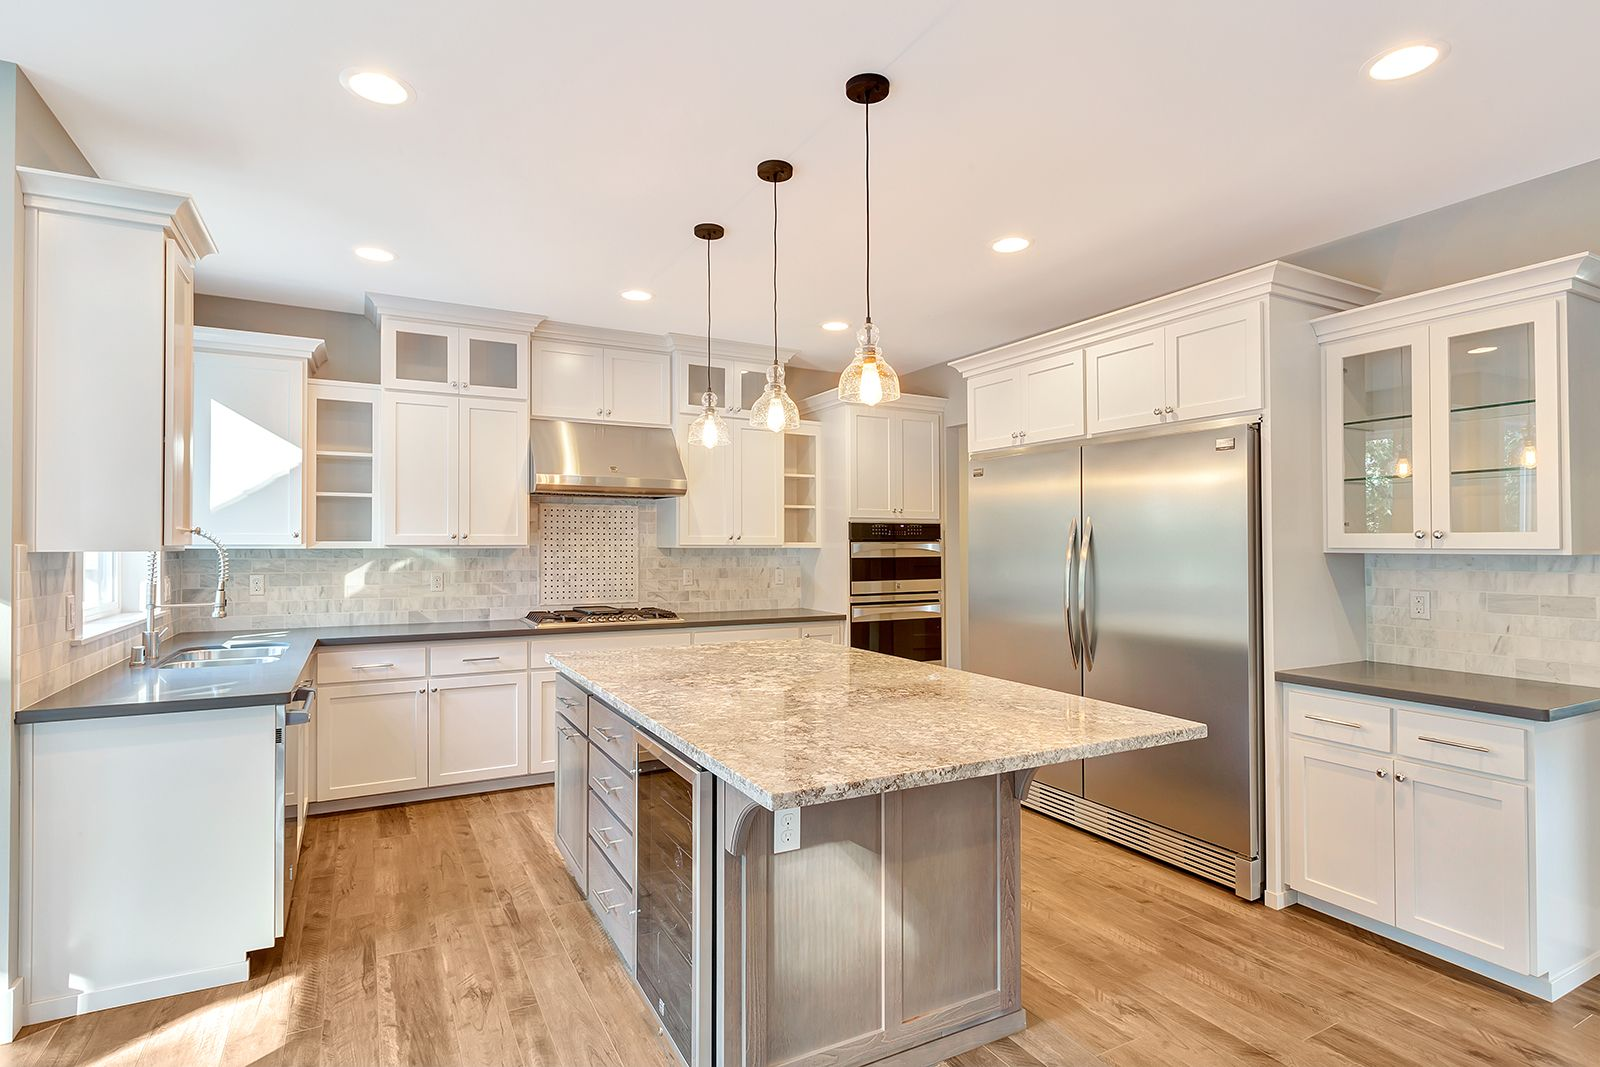 Mixing Kitchen Cabinet Colors Mixing Cabinet Colors And Granite And Quartz Counters Is A